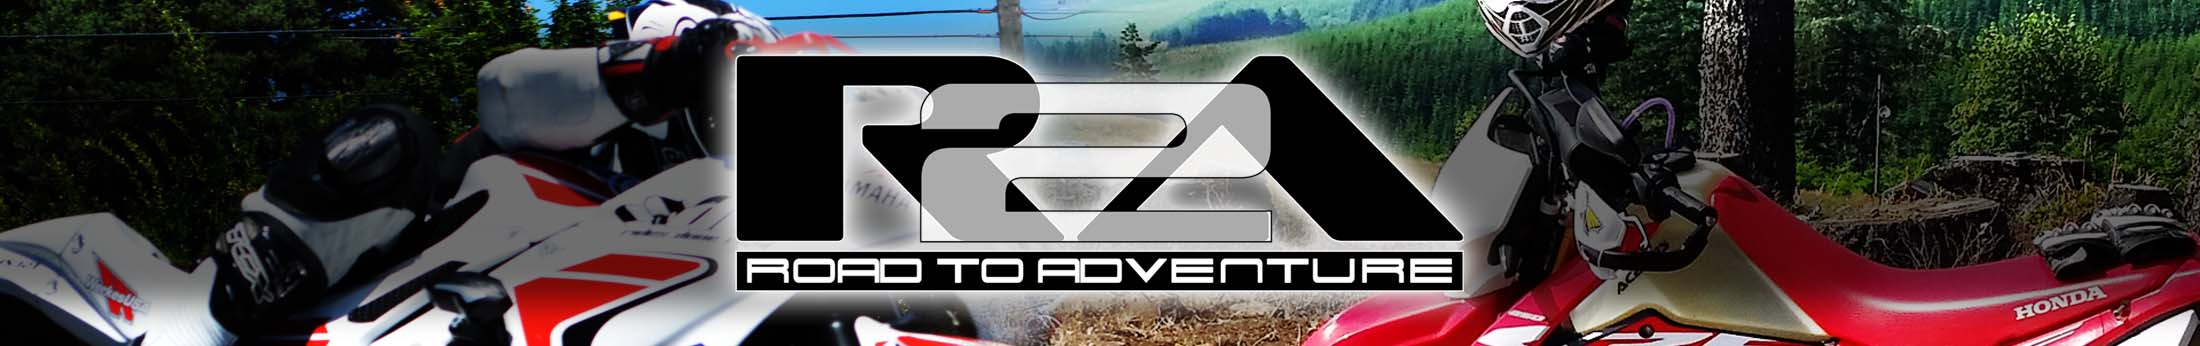 Road to Adventure (R2A)